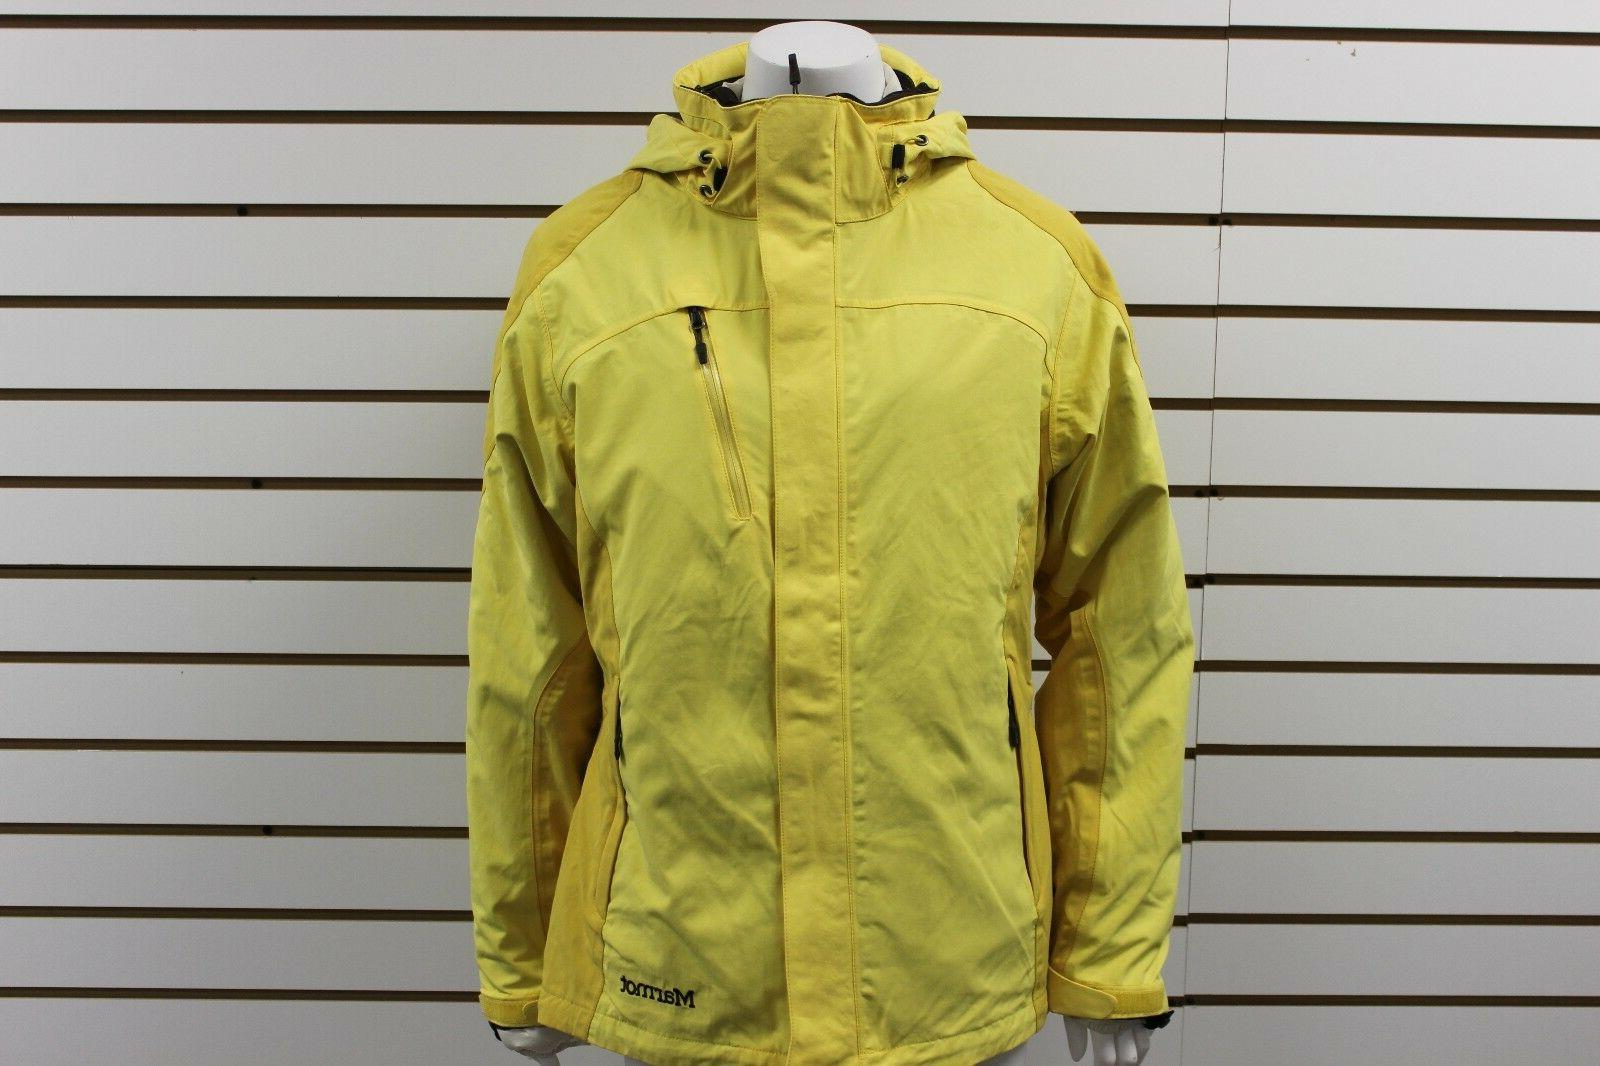 Women's Marmot MemBrain 3-in-1 Madison Component Jacket Prim